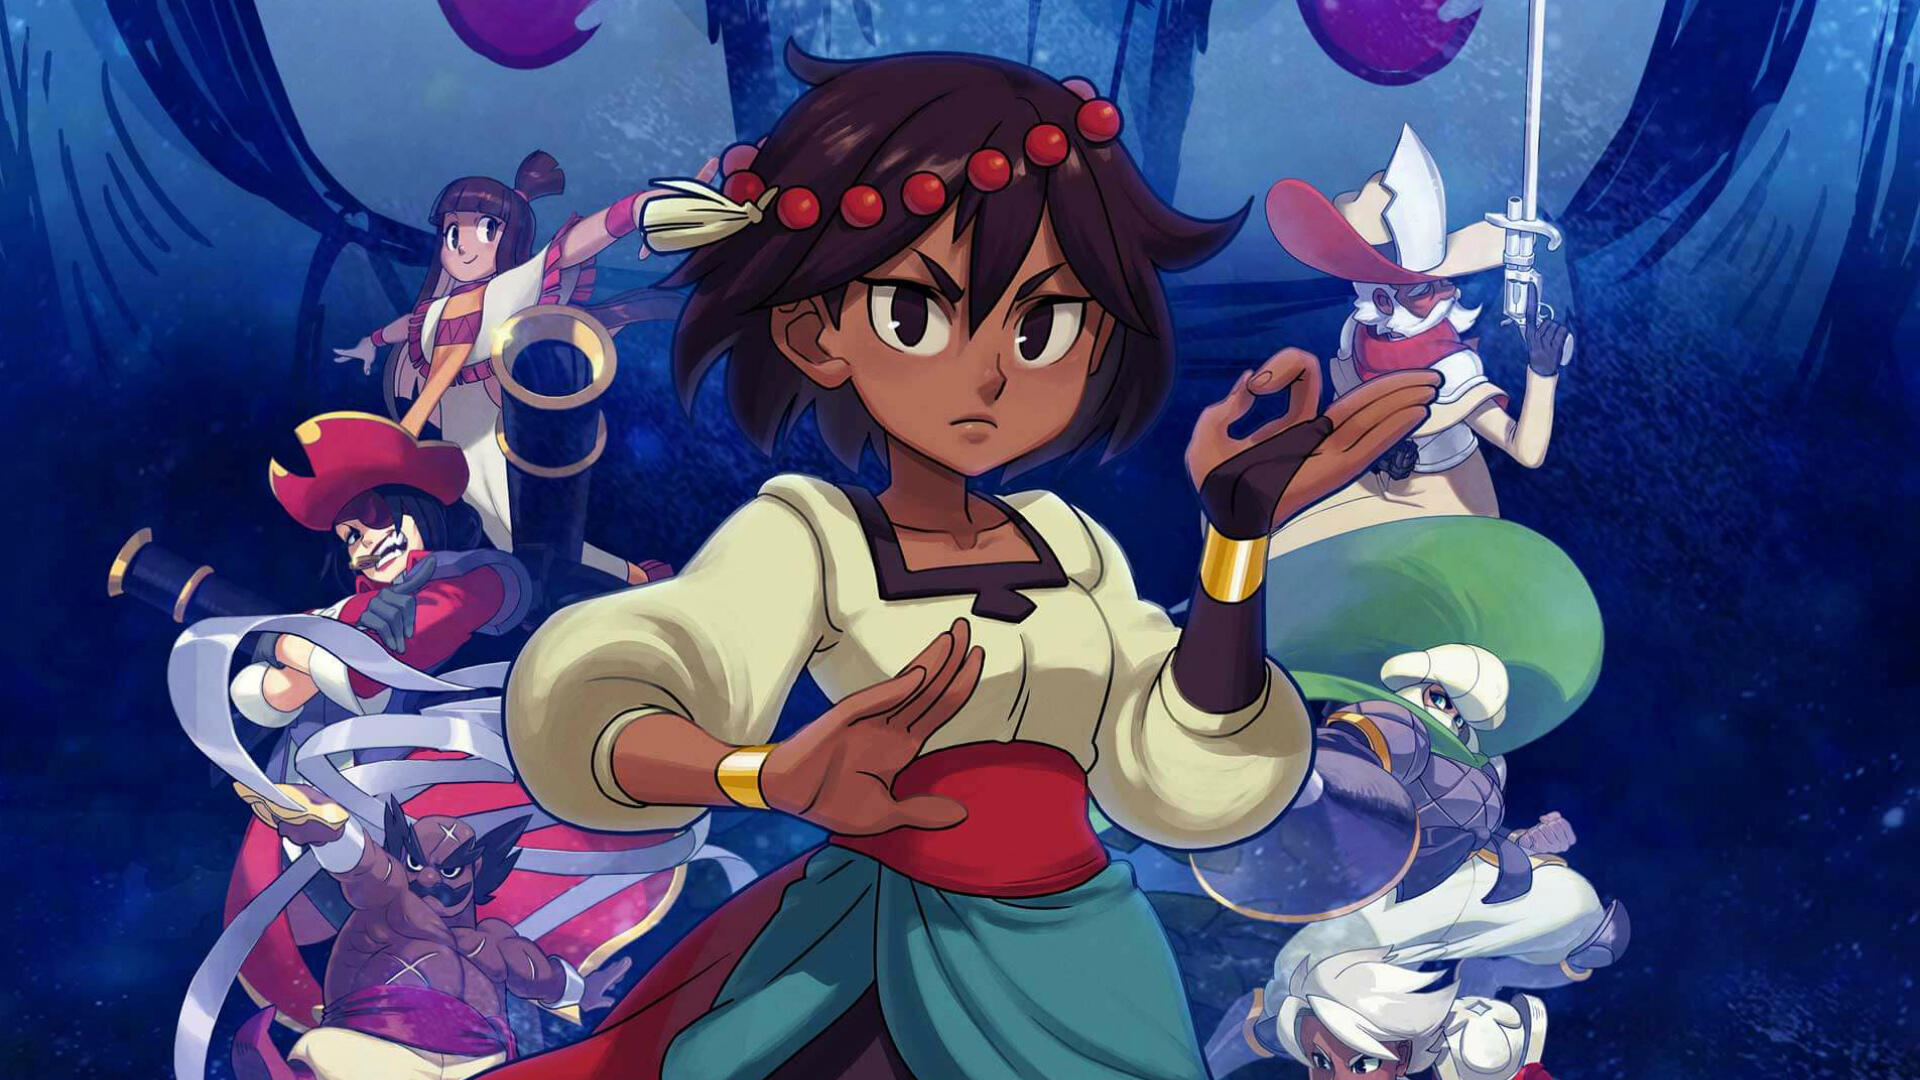 """Indivisible Devs On Having a Female Lead """"Who F***s Up"""" and Flipping Fantasy Setting Tropes"""